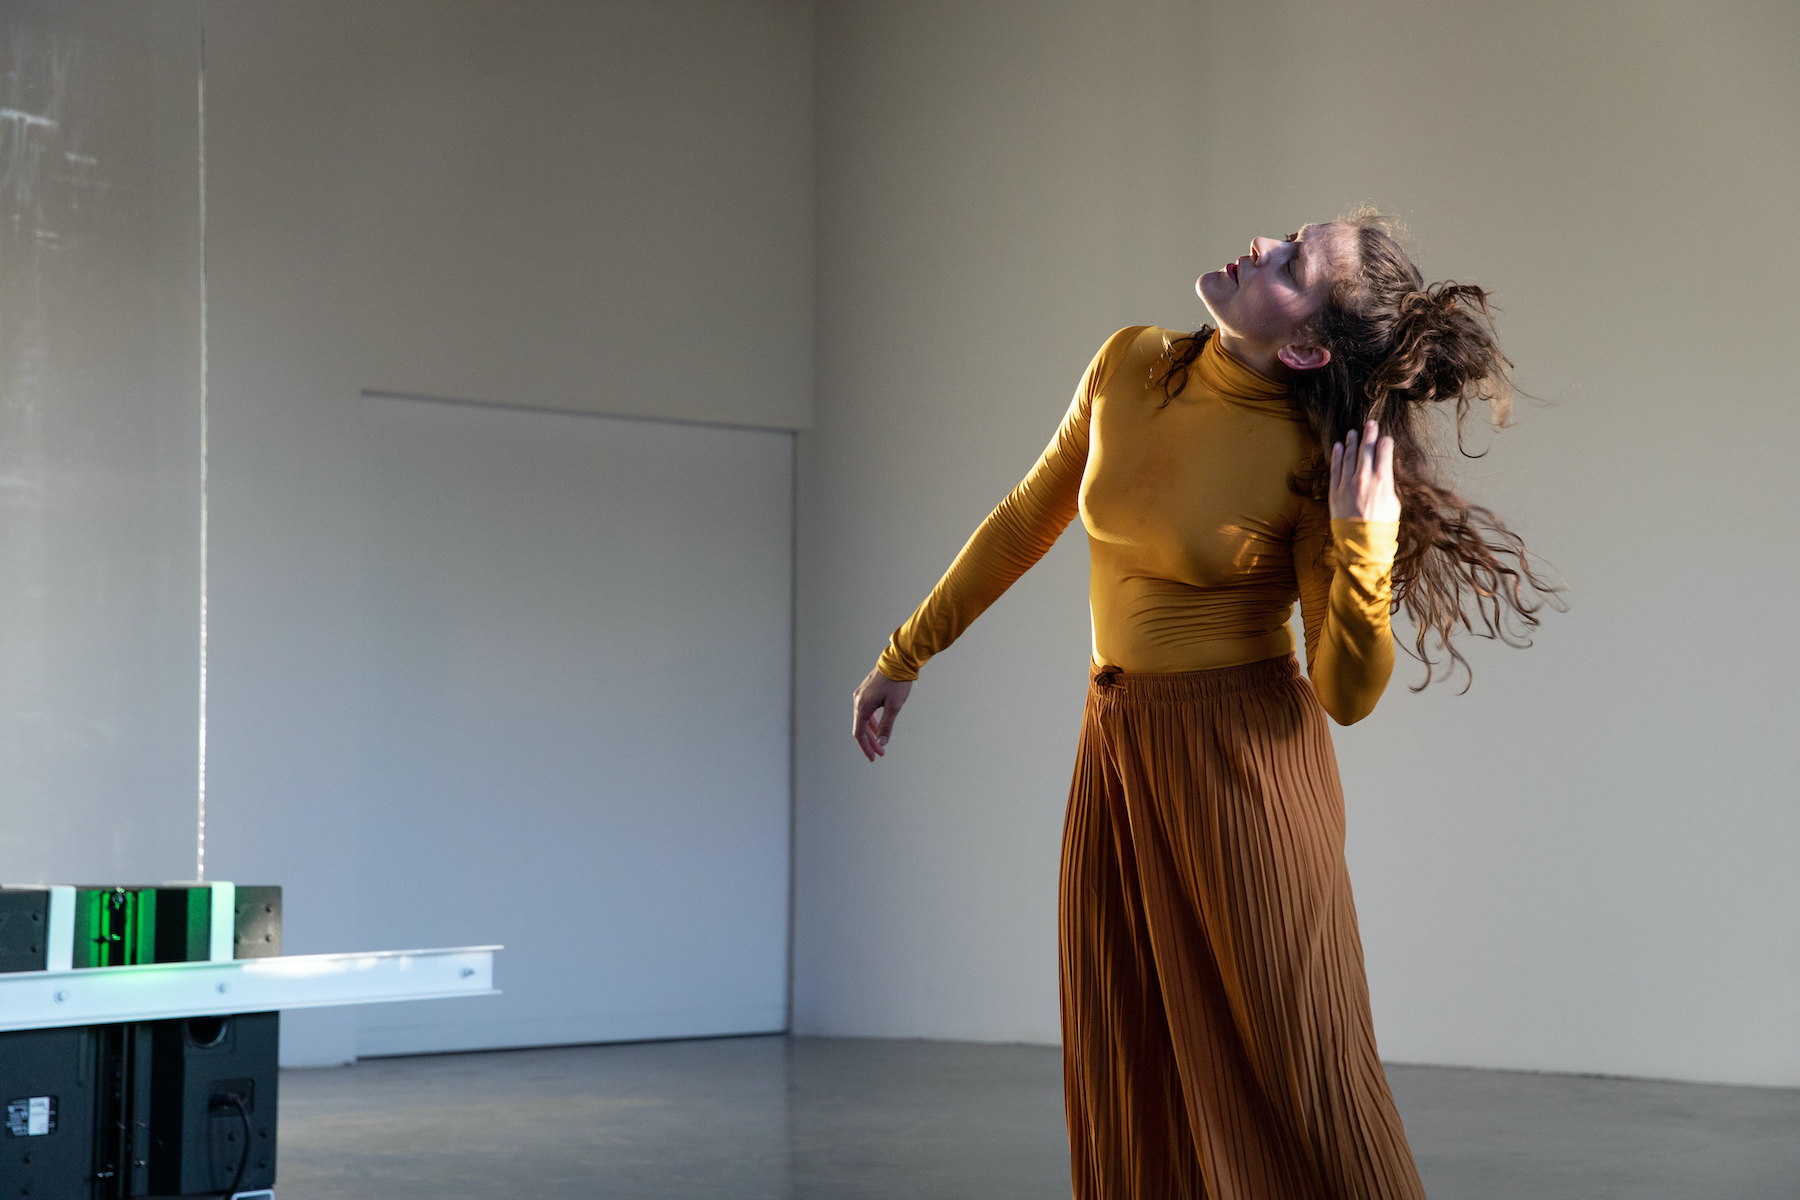 A woman pulls her head back while swinging to the side in a performance.